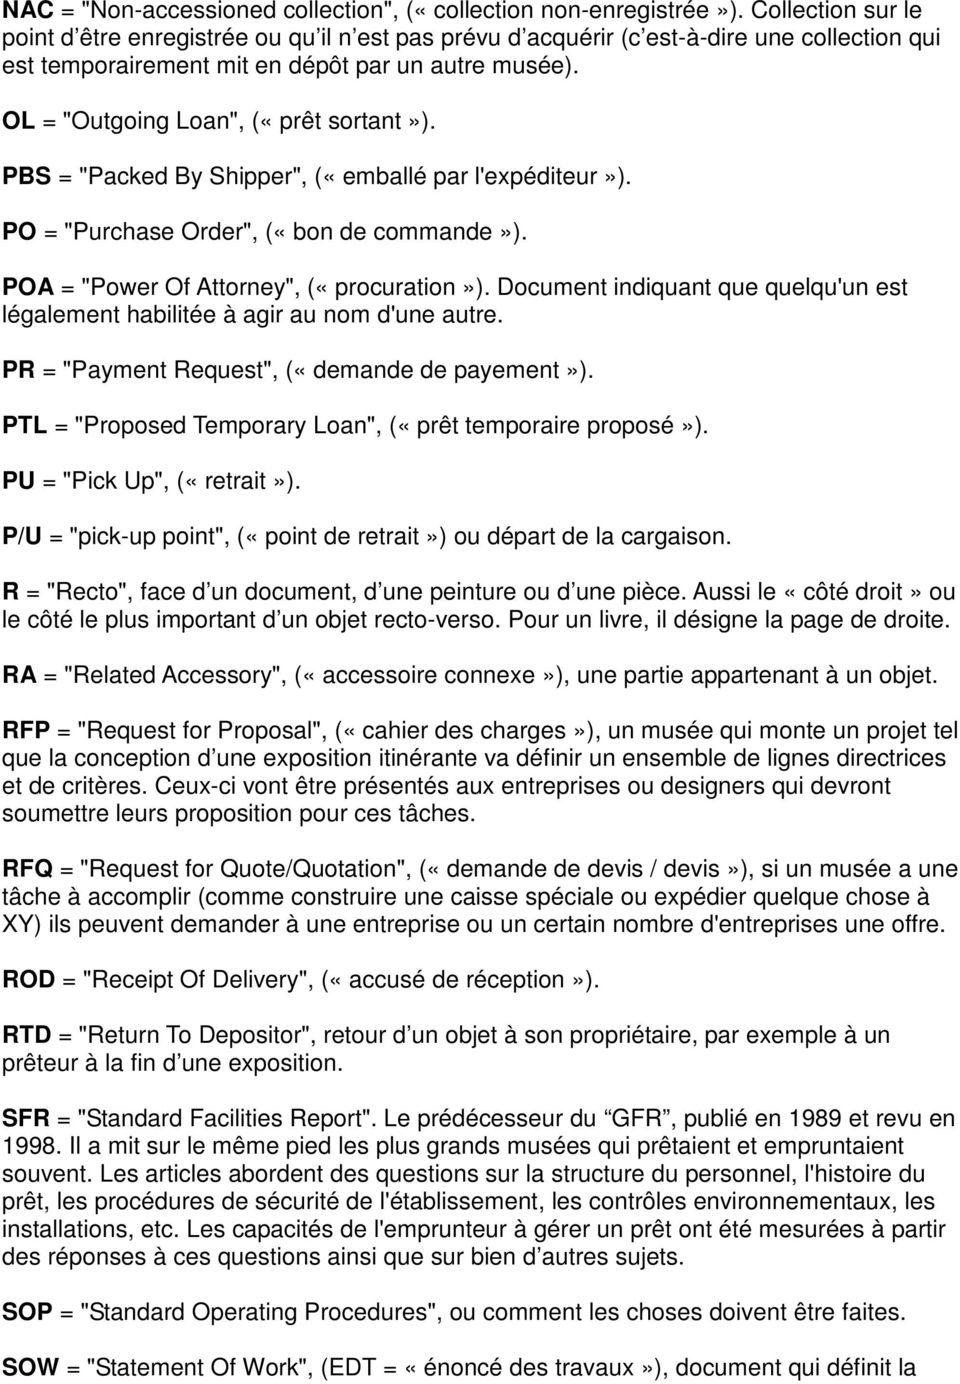 "OL = ""Outgoing Loan"", («prêt sortant»). PBS = ""Packed By Shipper"", («emballé par l'expéditeur»). PO = ""Purchase Order"", («bon de commande»). POA = ""Power Of Attorney"", («procuration»)."